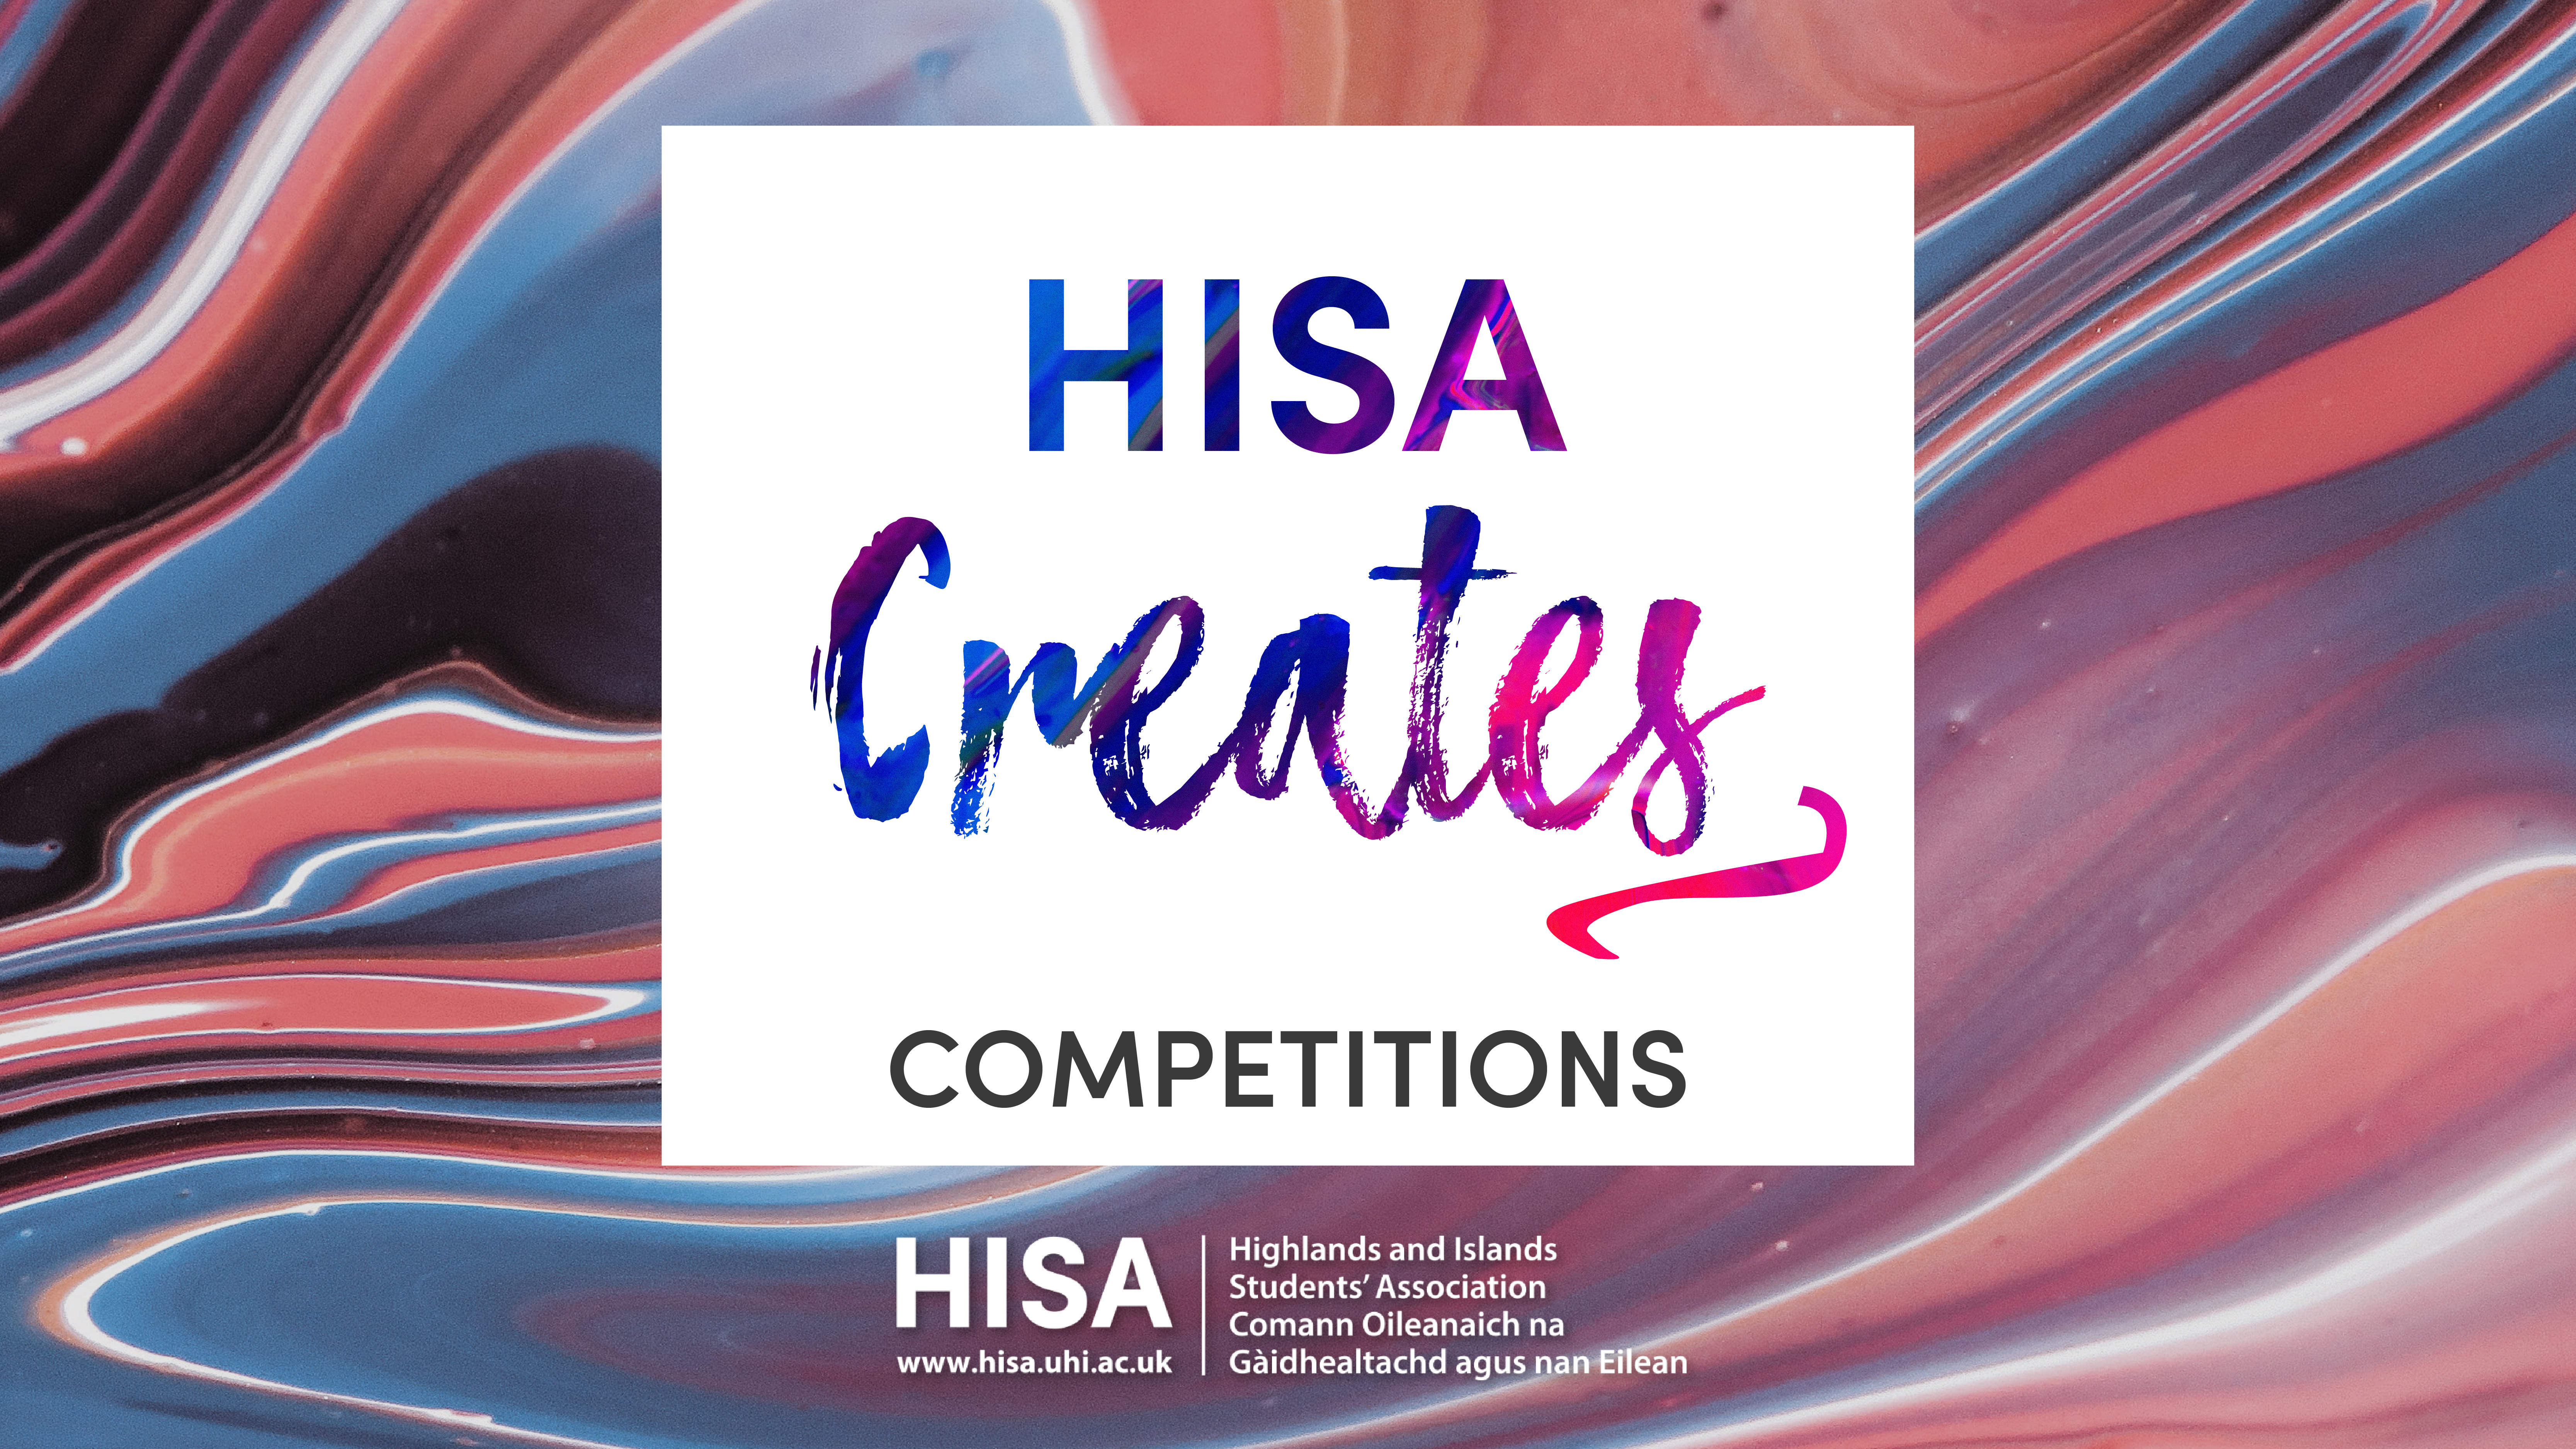 Hisa creates competitions twitter 02